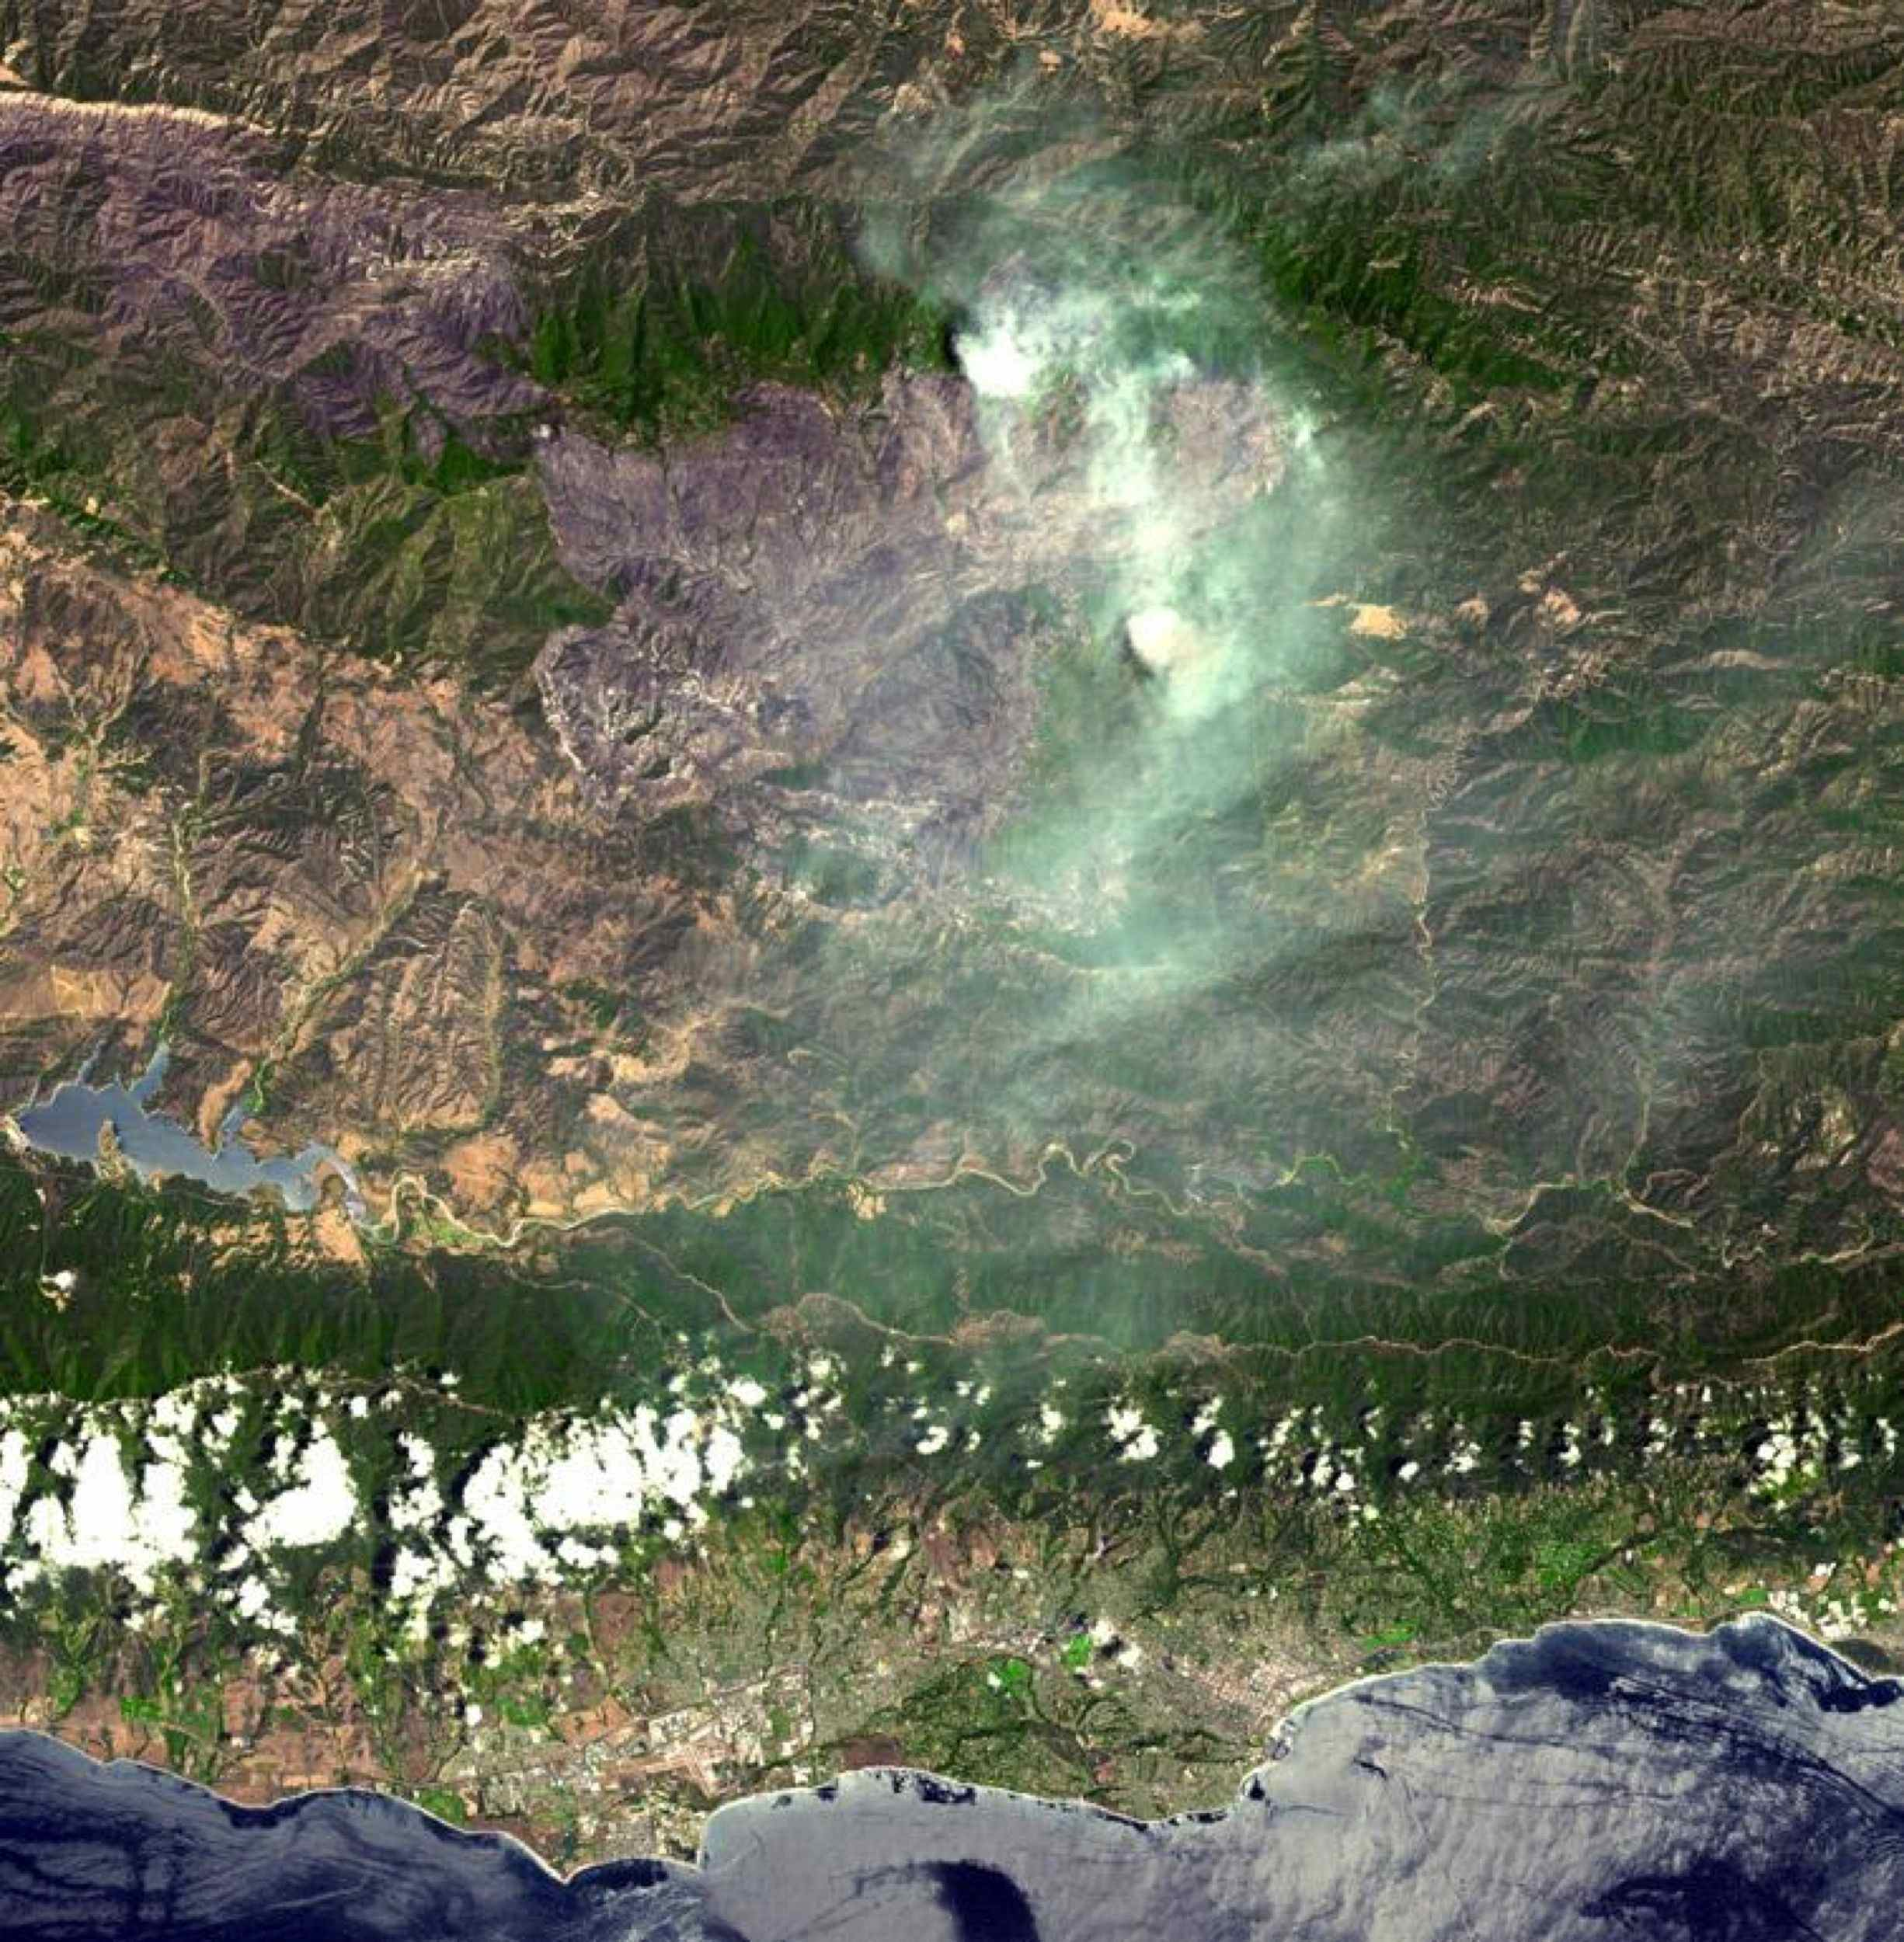 On August 7, 2007, the Zaca fire continued to burn in the Los Padres National Forest near Santa Barbara, California. This image is from NASA's Terra spacecraft.